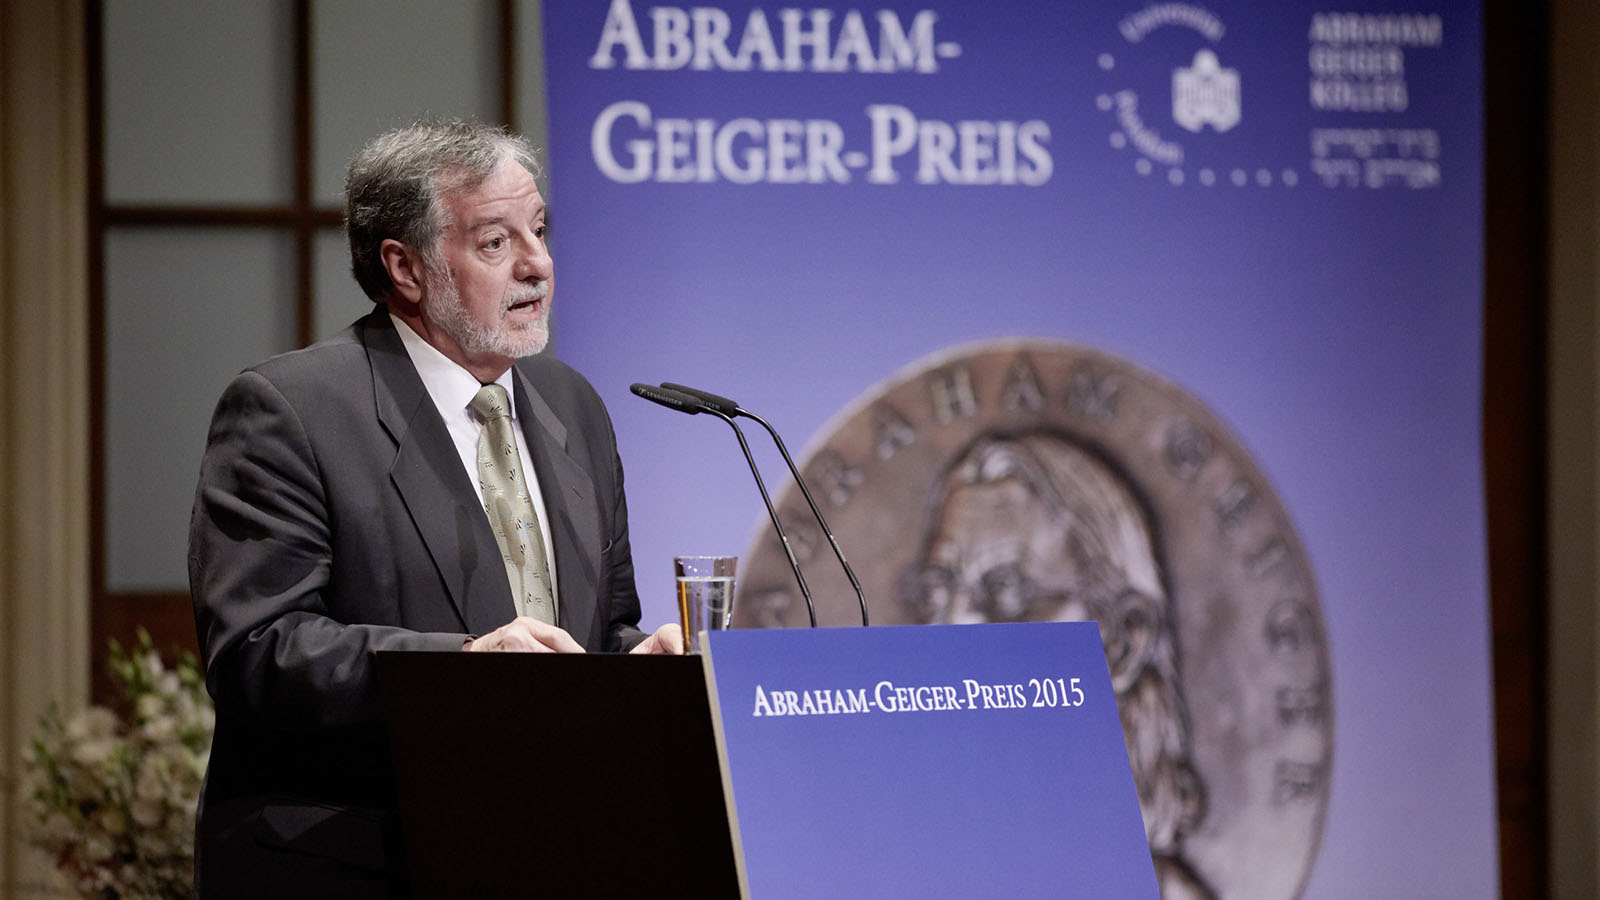 José Casanova offering keynote at the Abraham Geiger Prize ceremony honoring Angela Merkel in 2015.